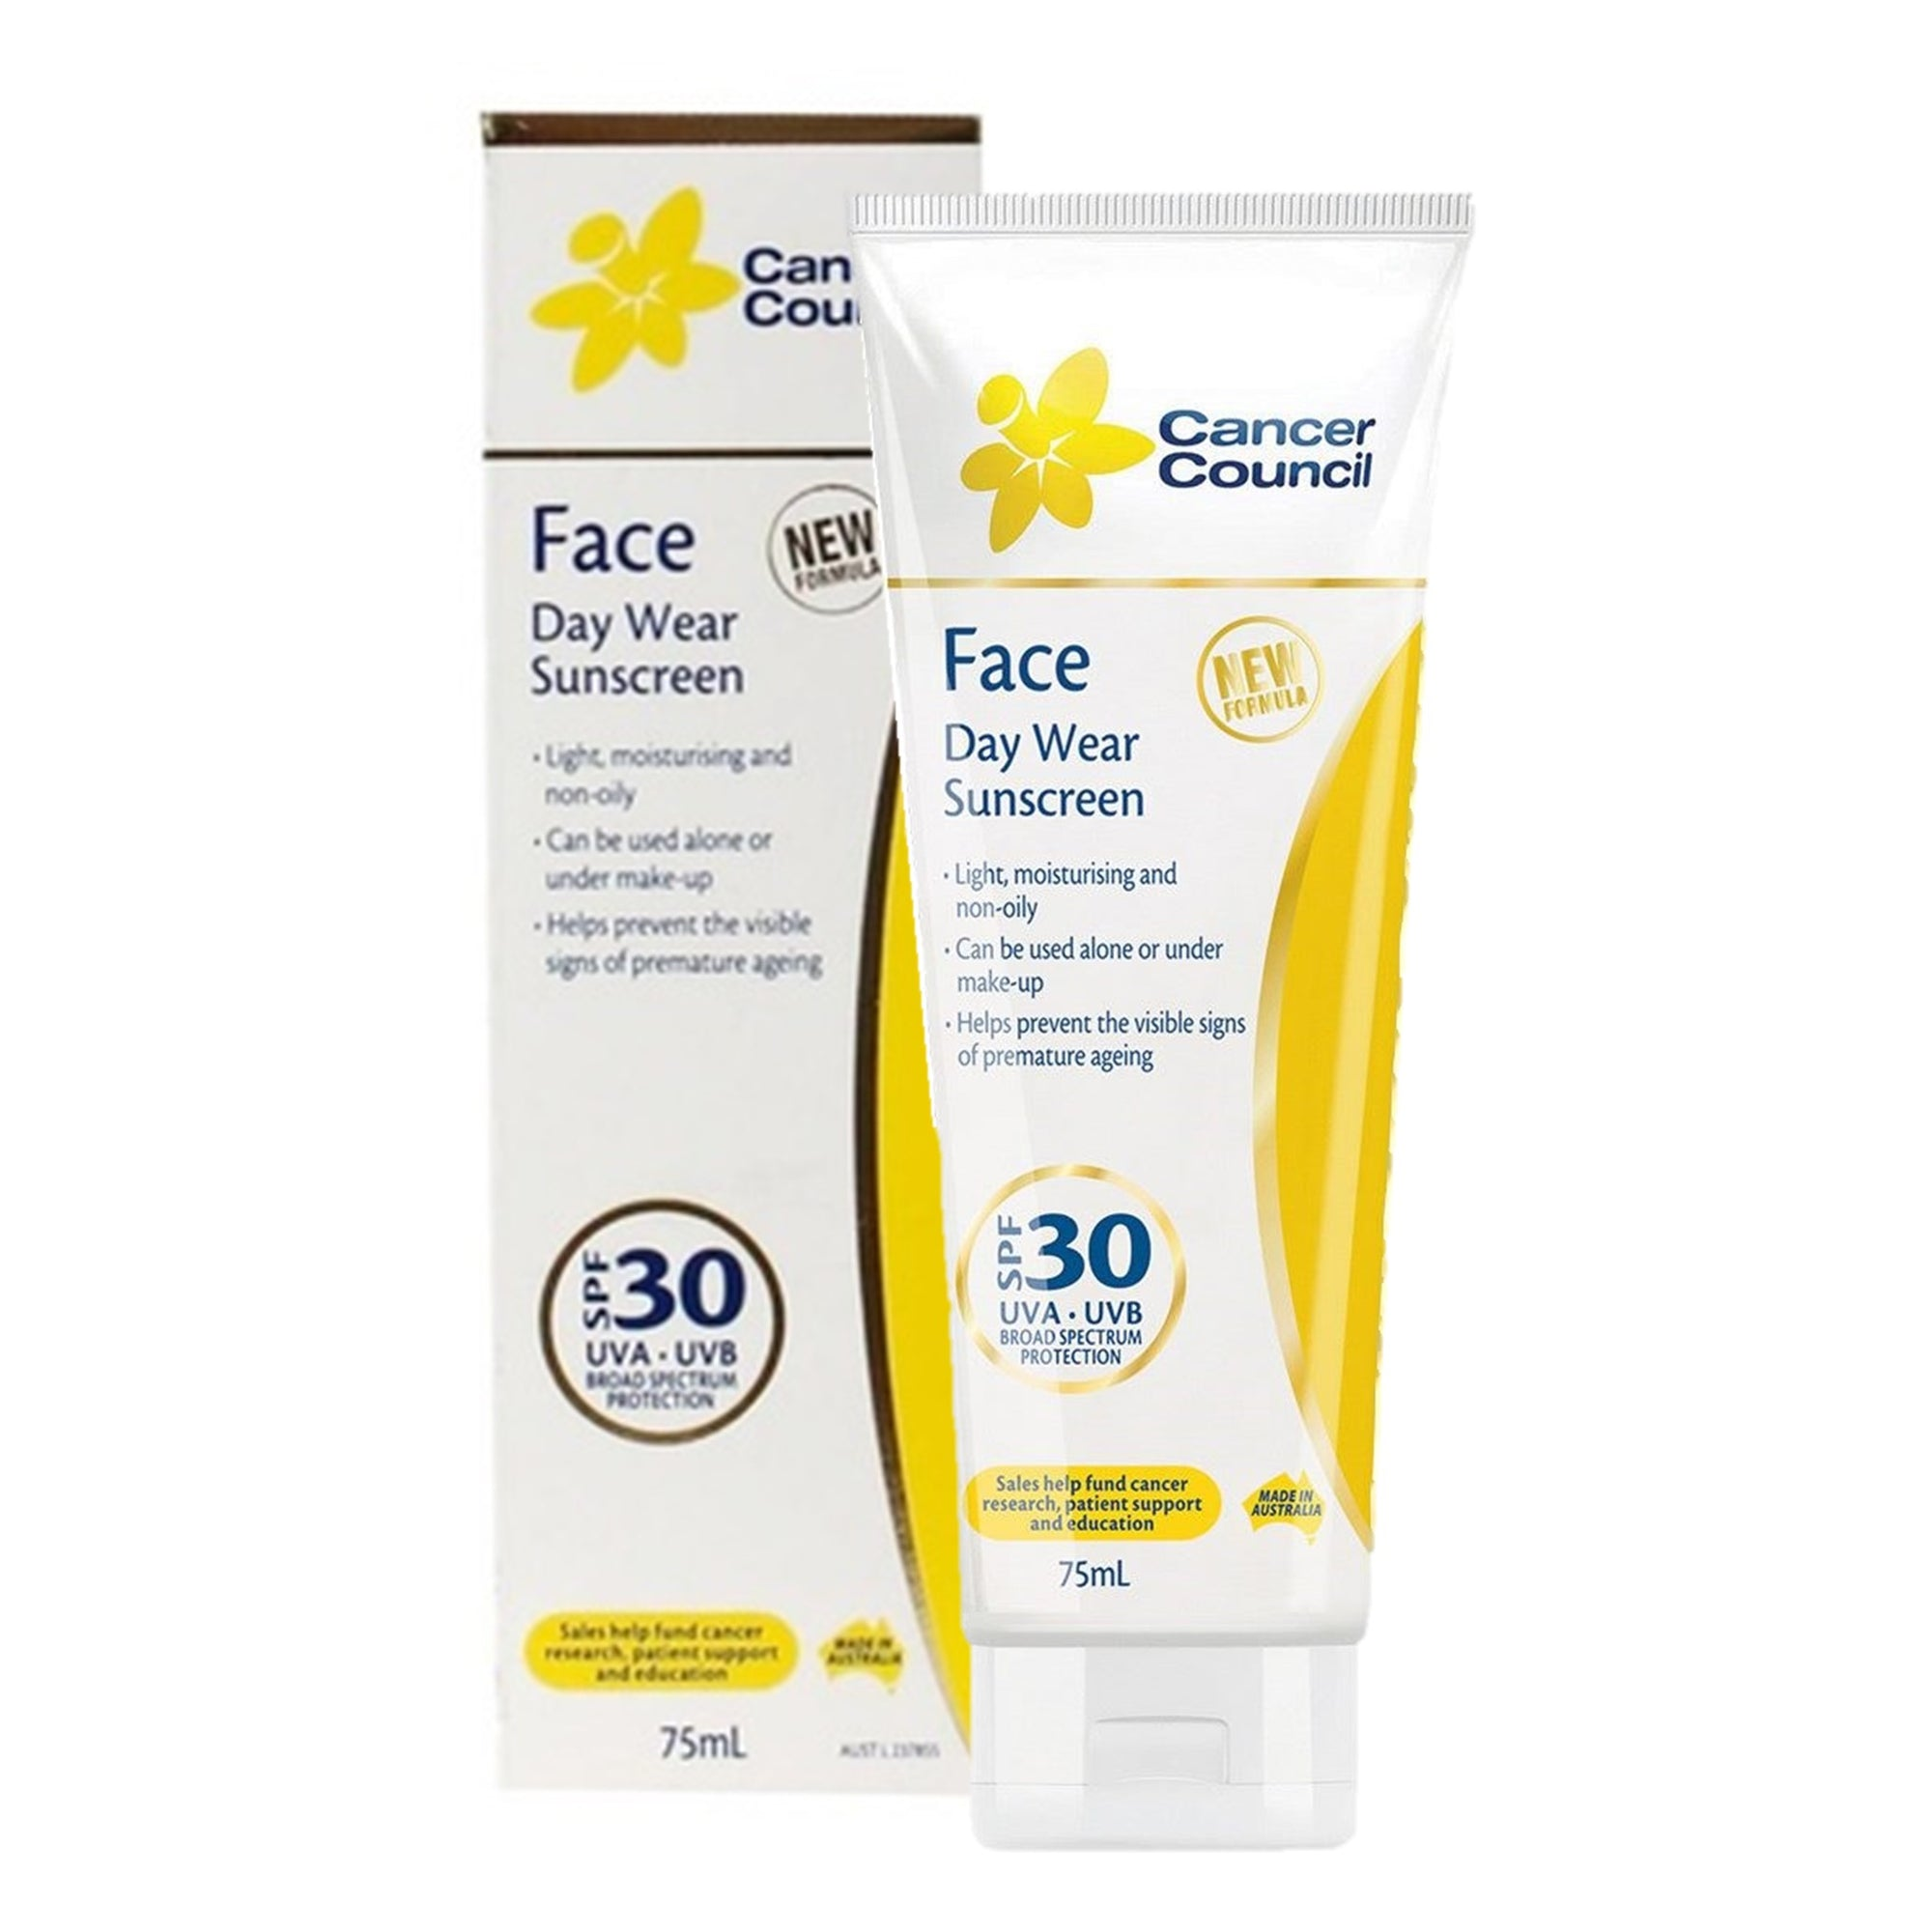 Cancer Council Face Day Wear Sunscreen 75Ml